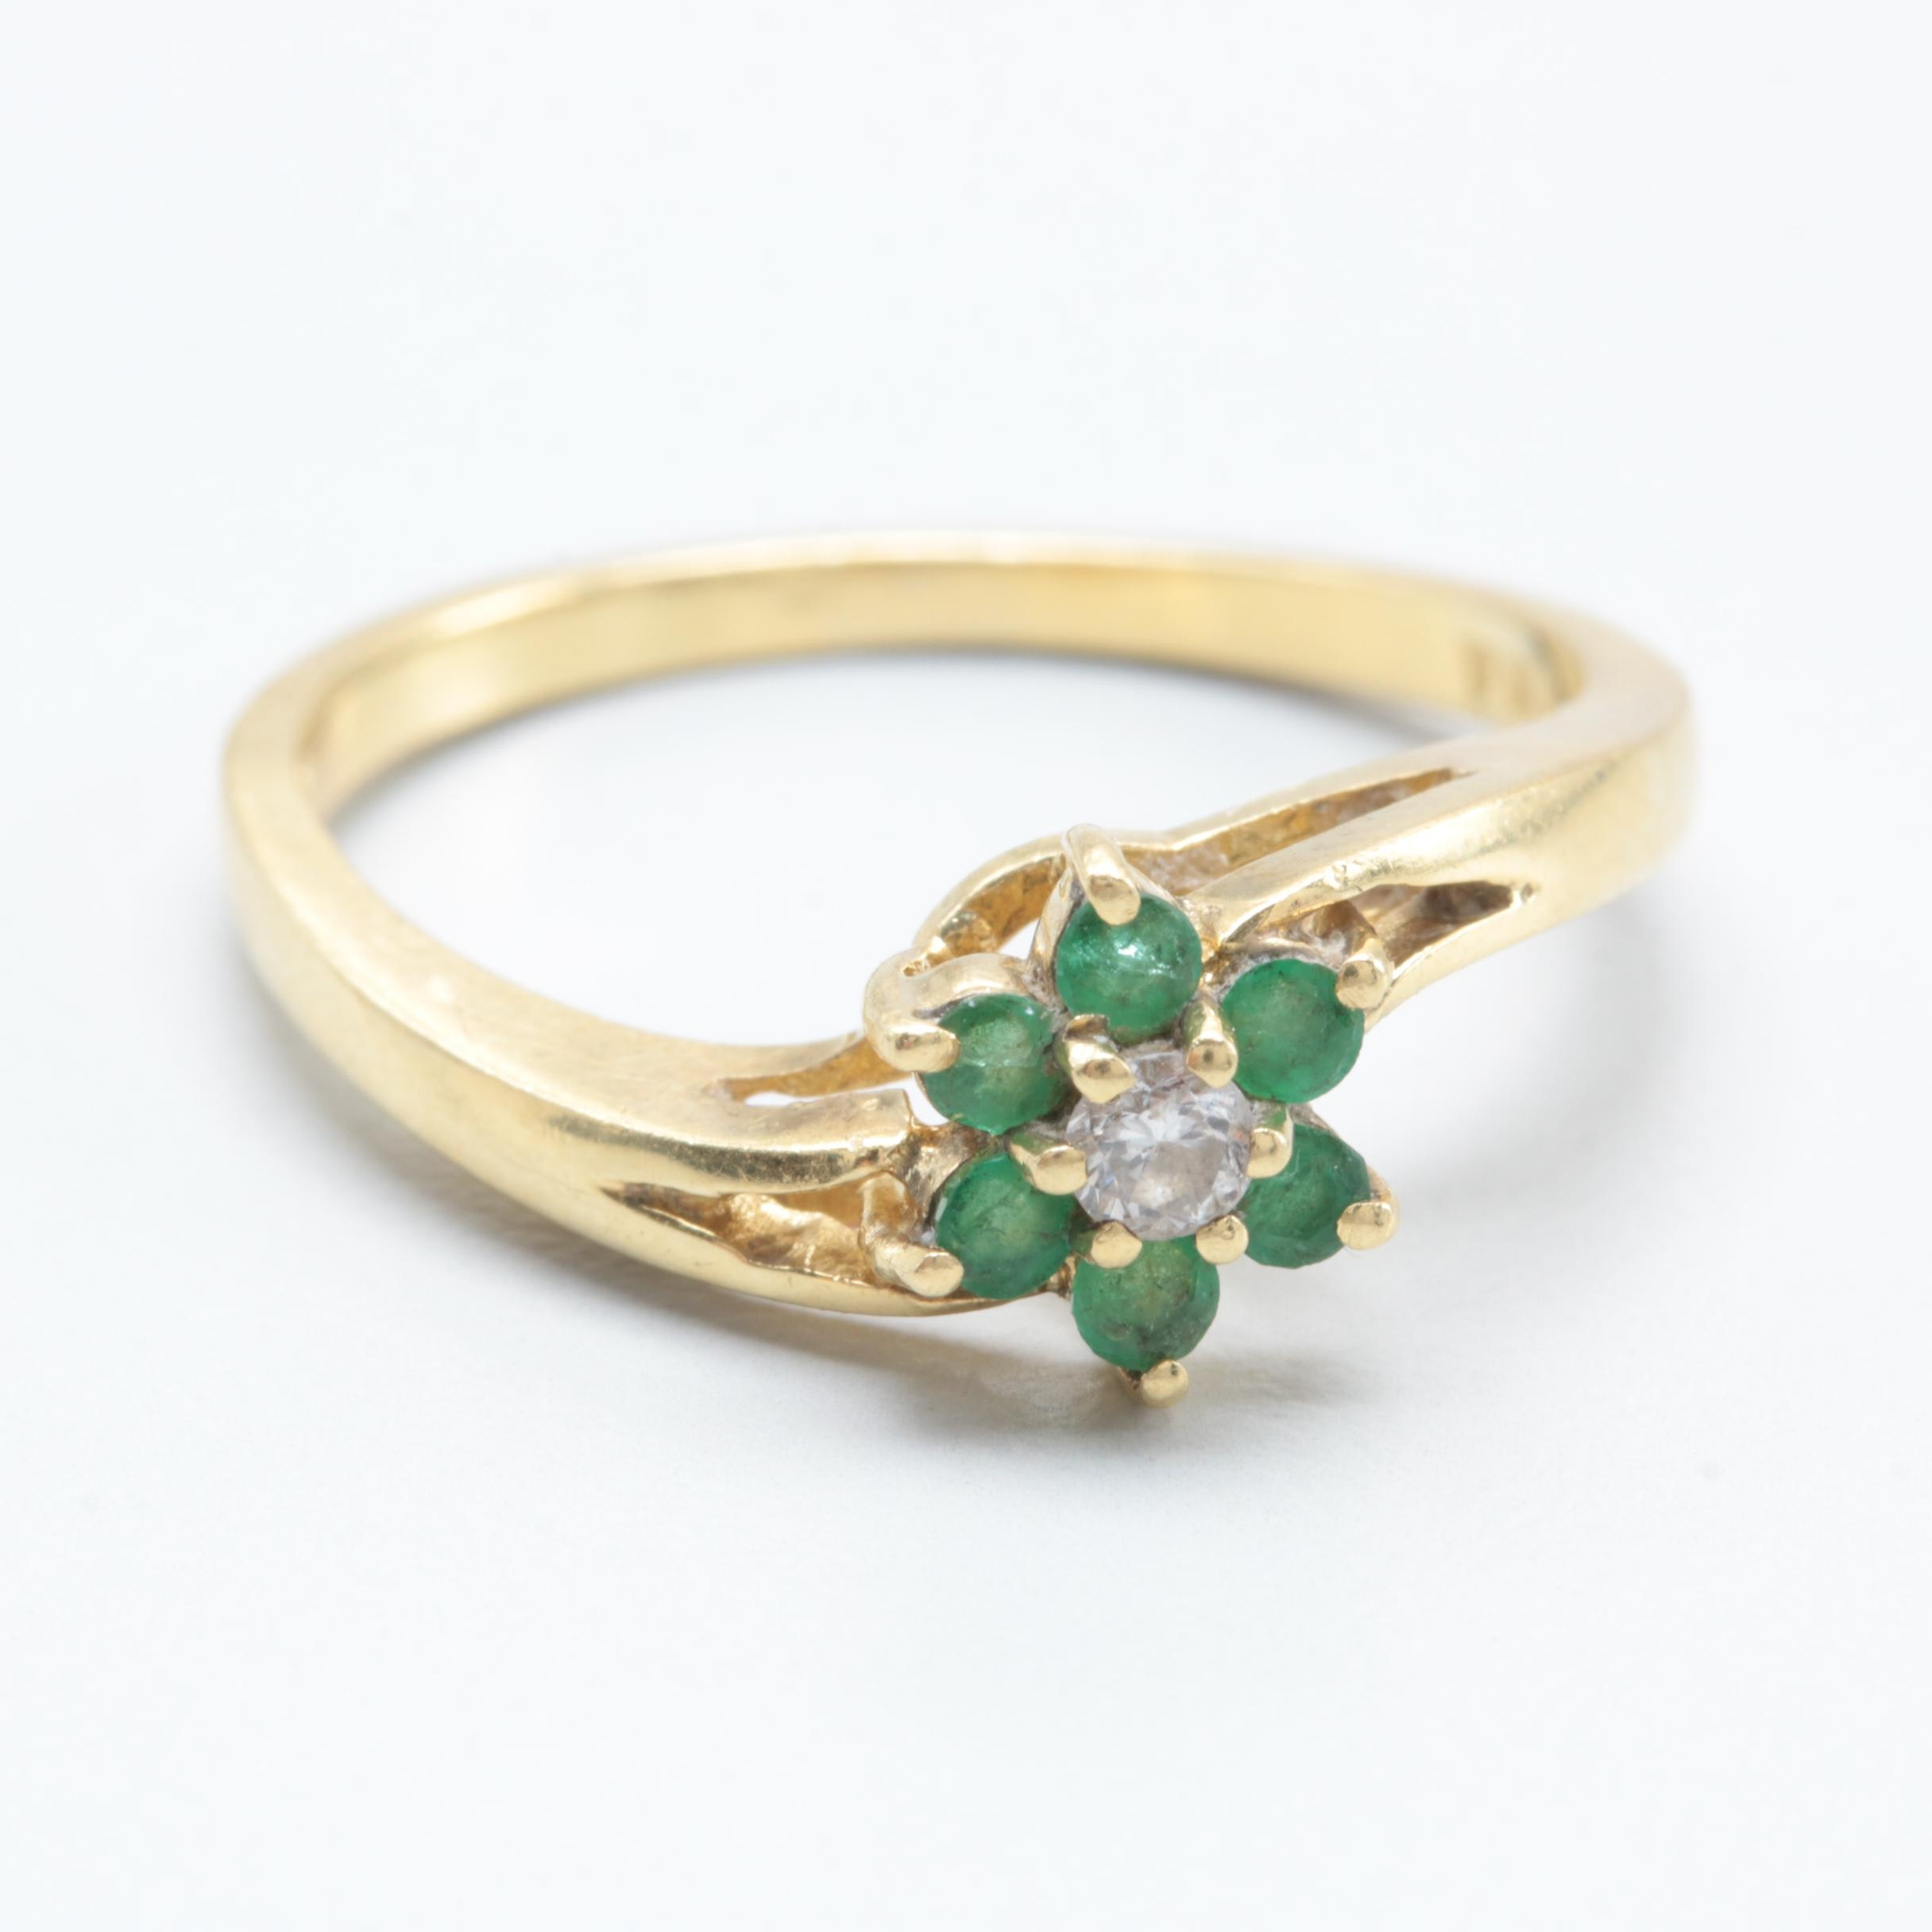 18K Yellow Gold Diamond and Emerald Ring